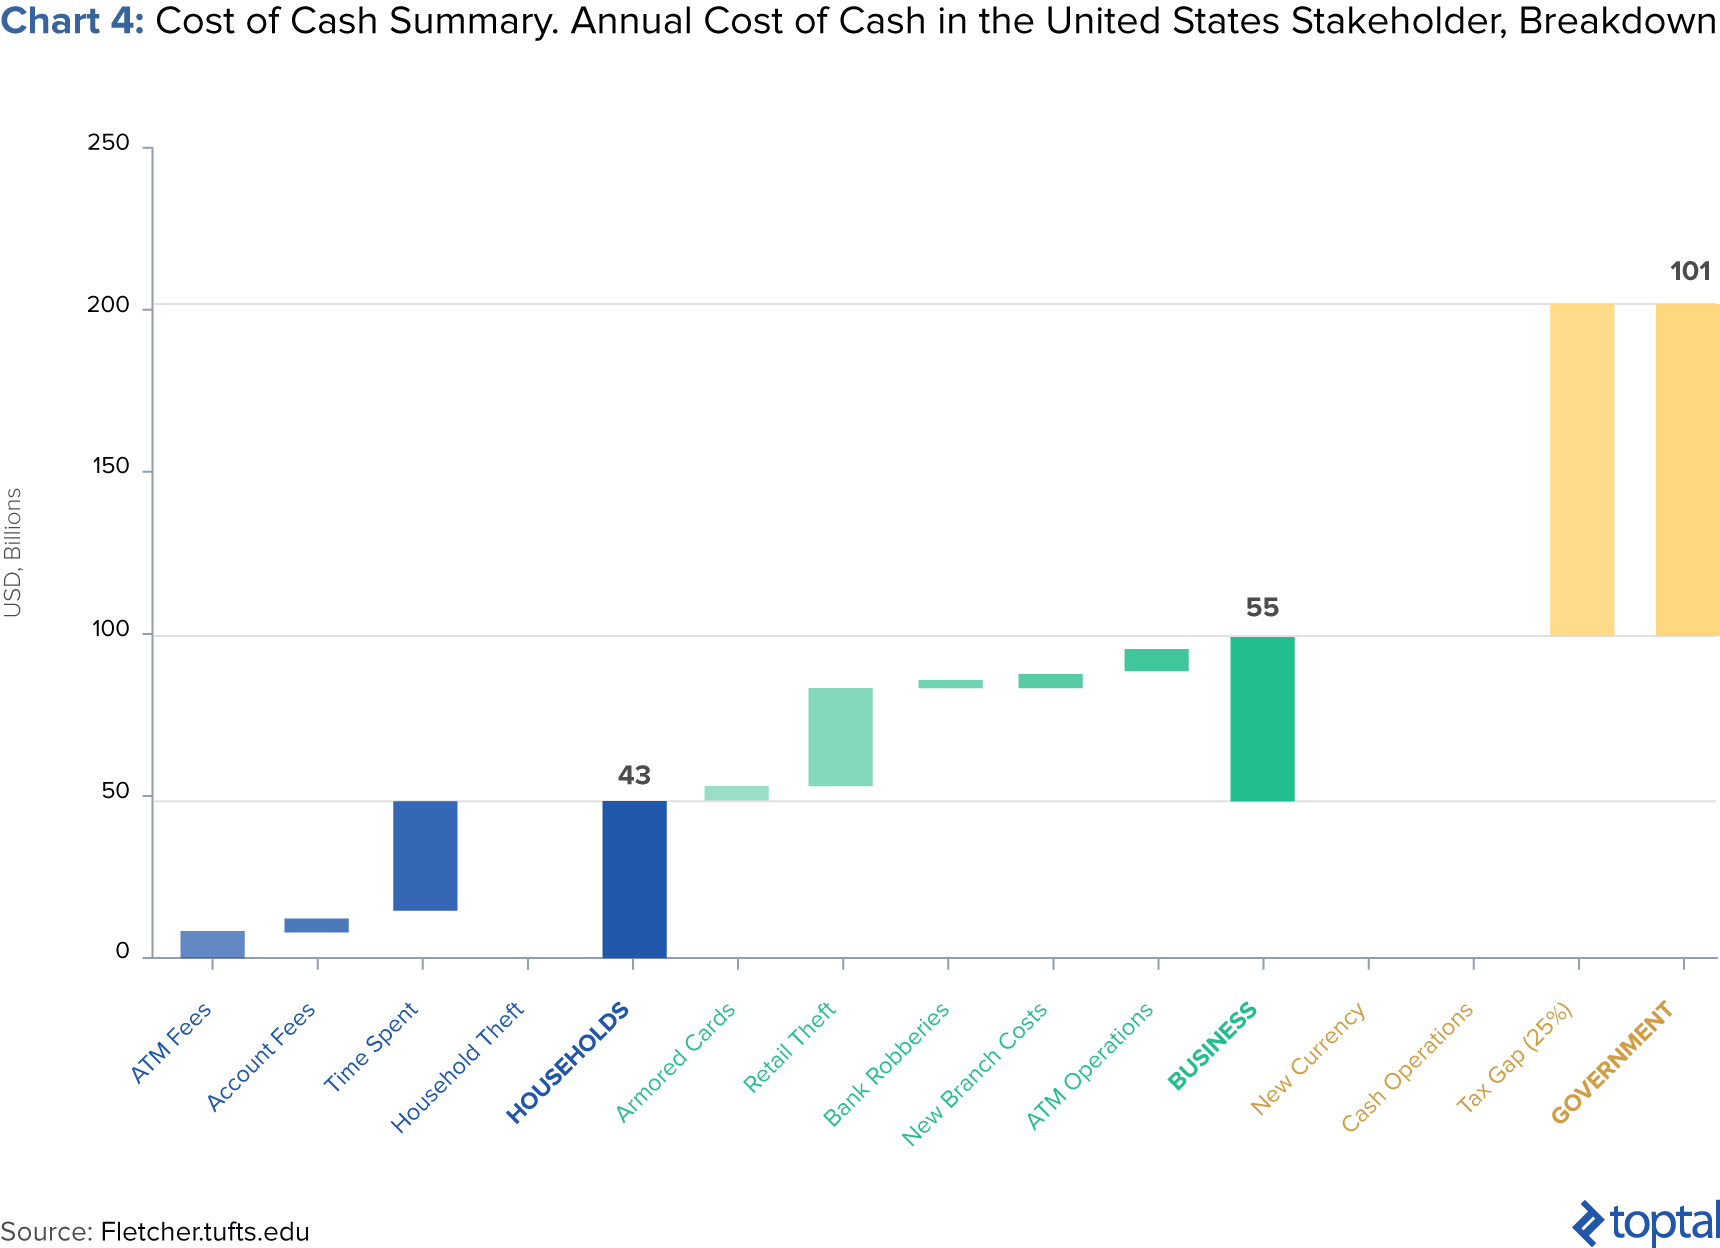 Image of Chart 4: Cost of Cash Summary. Annual Cost of Cash in the United States Stakeholder, Breakdown